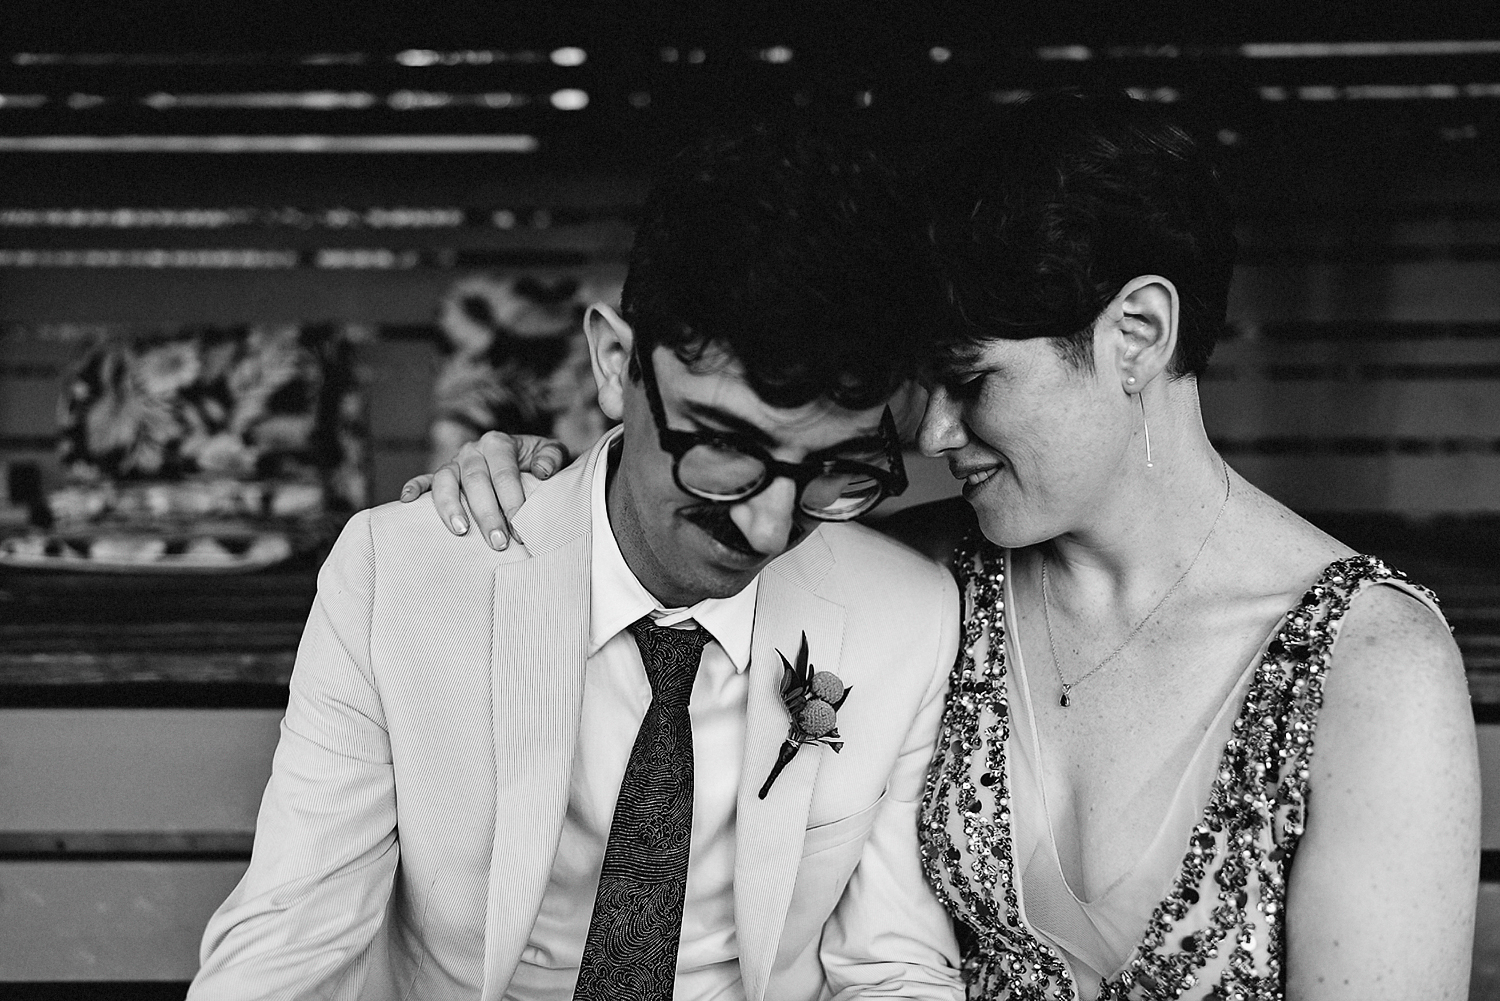 Best-Wedding-Photographers-in-Toronto-with-Photojournalistic-Documentary-Style-3B-Photography-Brian-Batista-Bettencourt-Intimate-Vintage-Wedding-at-Toronto-Island-Cafe-Clubhouse-Sunset-portraits-on-Tennis-Court-BW.jpg